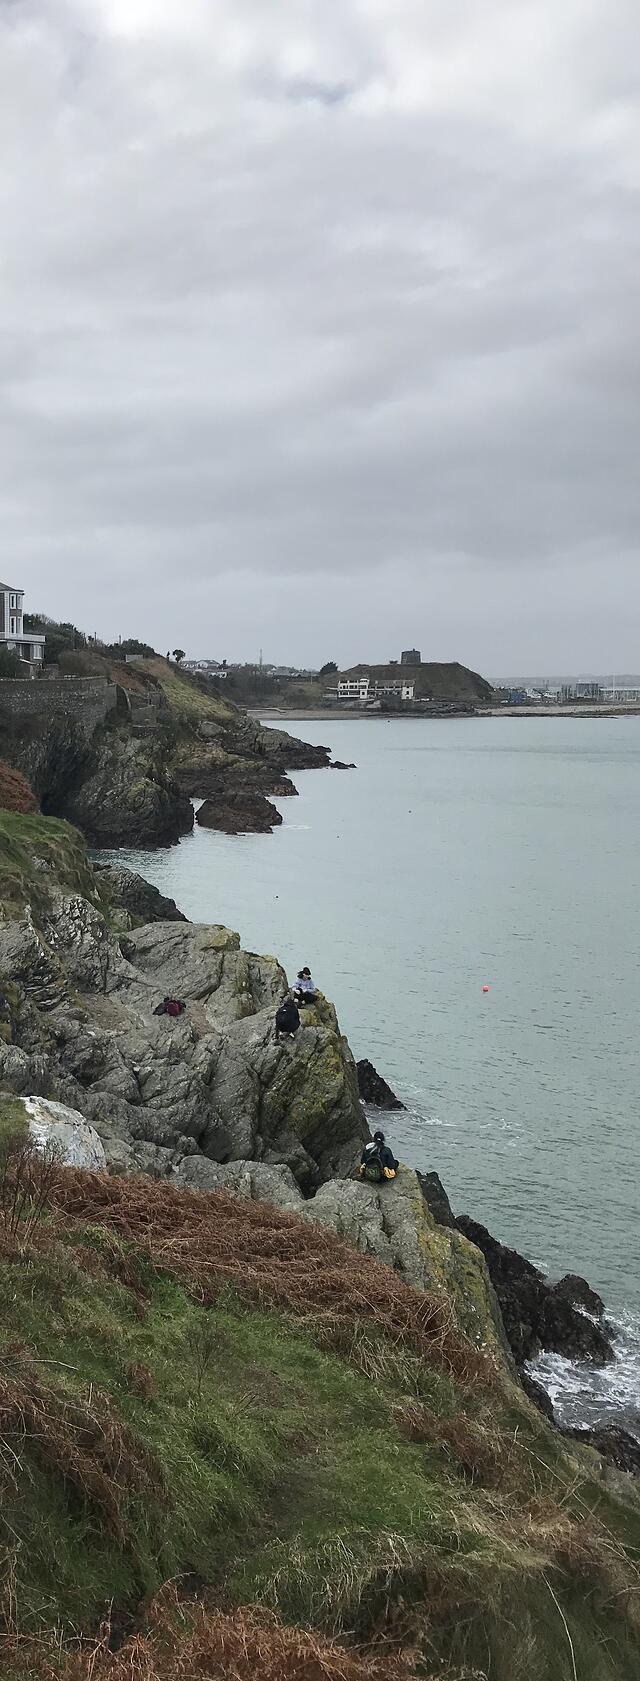 CAPAStudyAbroad_Dublin_Spring2018_From Brandon Mooney - Cliff Walk in Bray